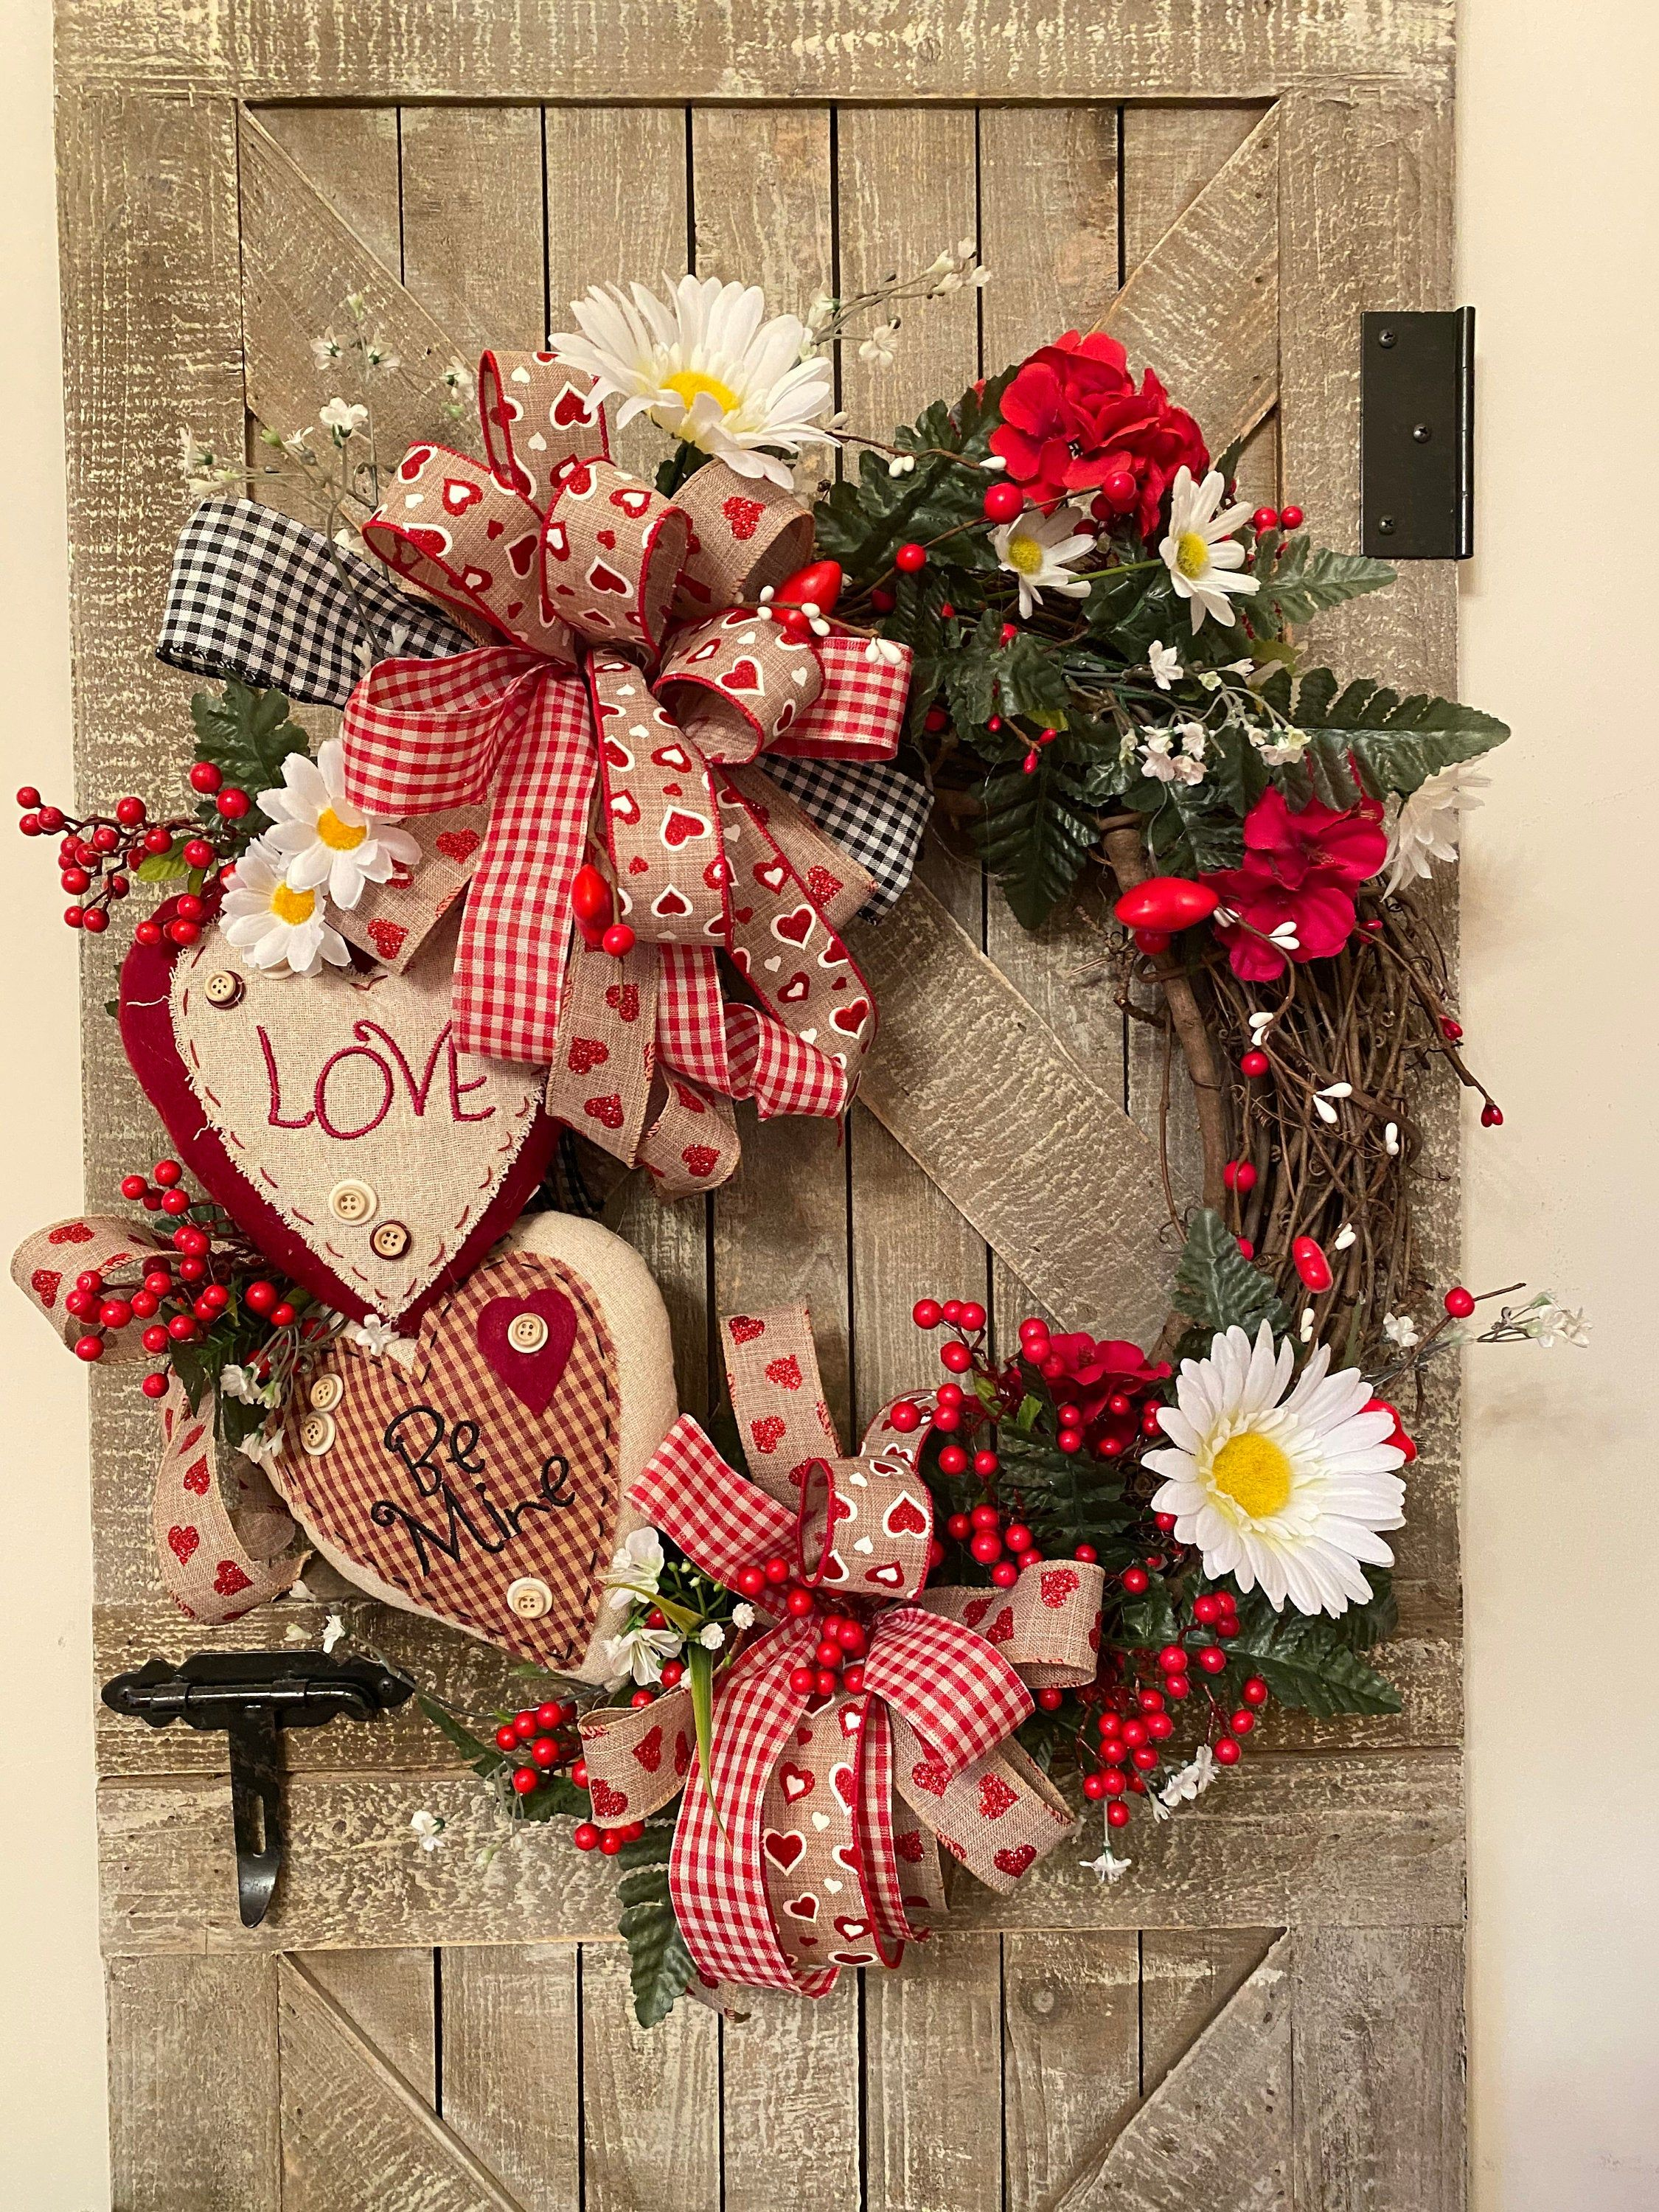 Love Gift Red Heart Wreaths Heart Shaped Wreaths Heart Decorations Red Heart Gifts Heart Door Decor Gift for Her Fun Wreaths Hearts